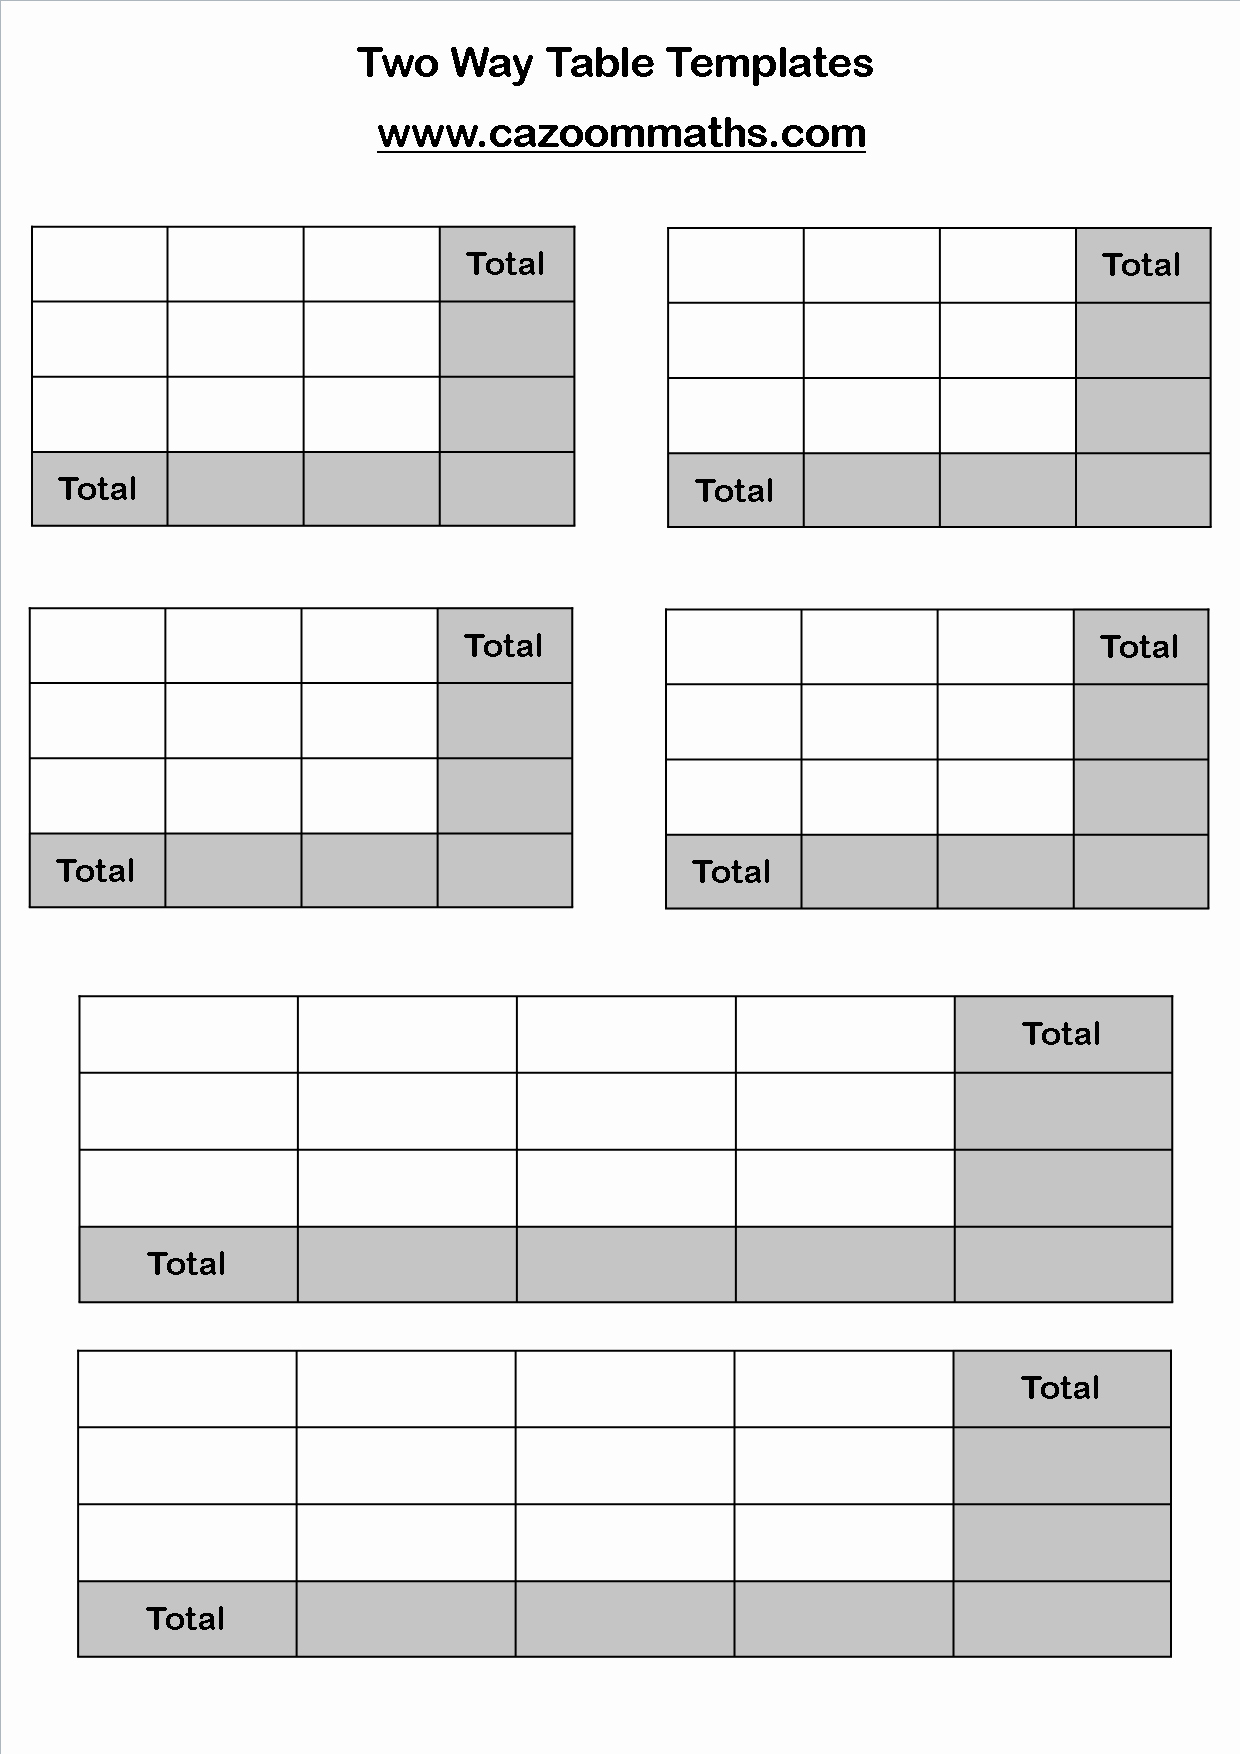 Two Way Frequency Tables Worksheet Inspirational Two Way Tables and Pictograms